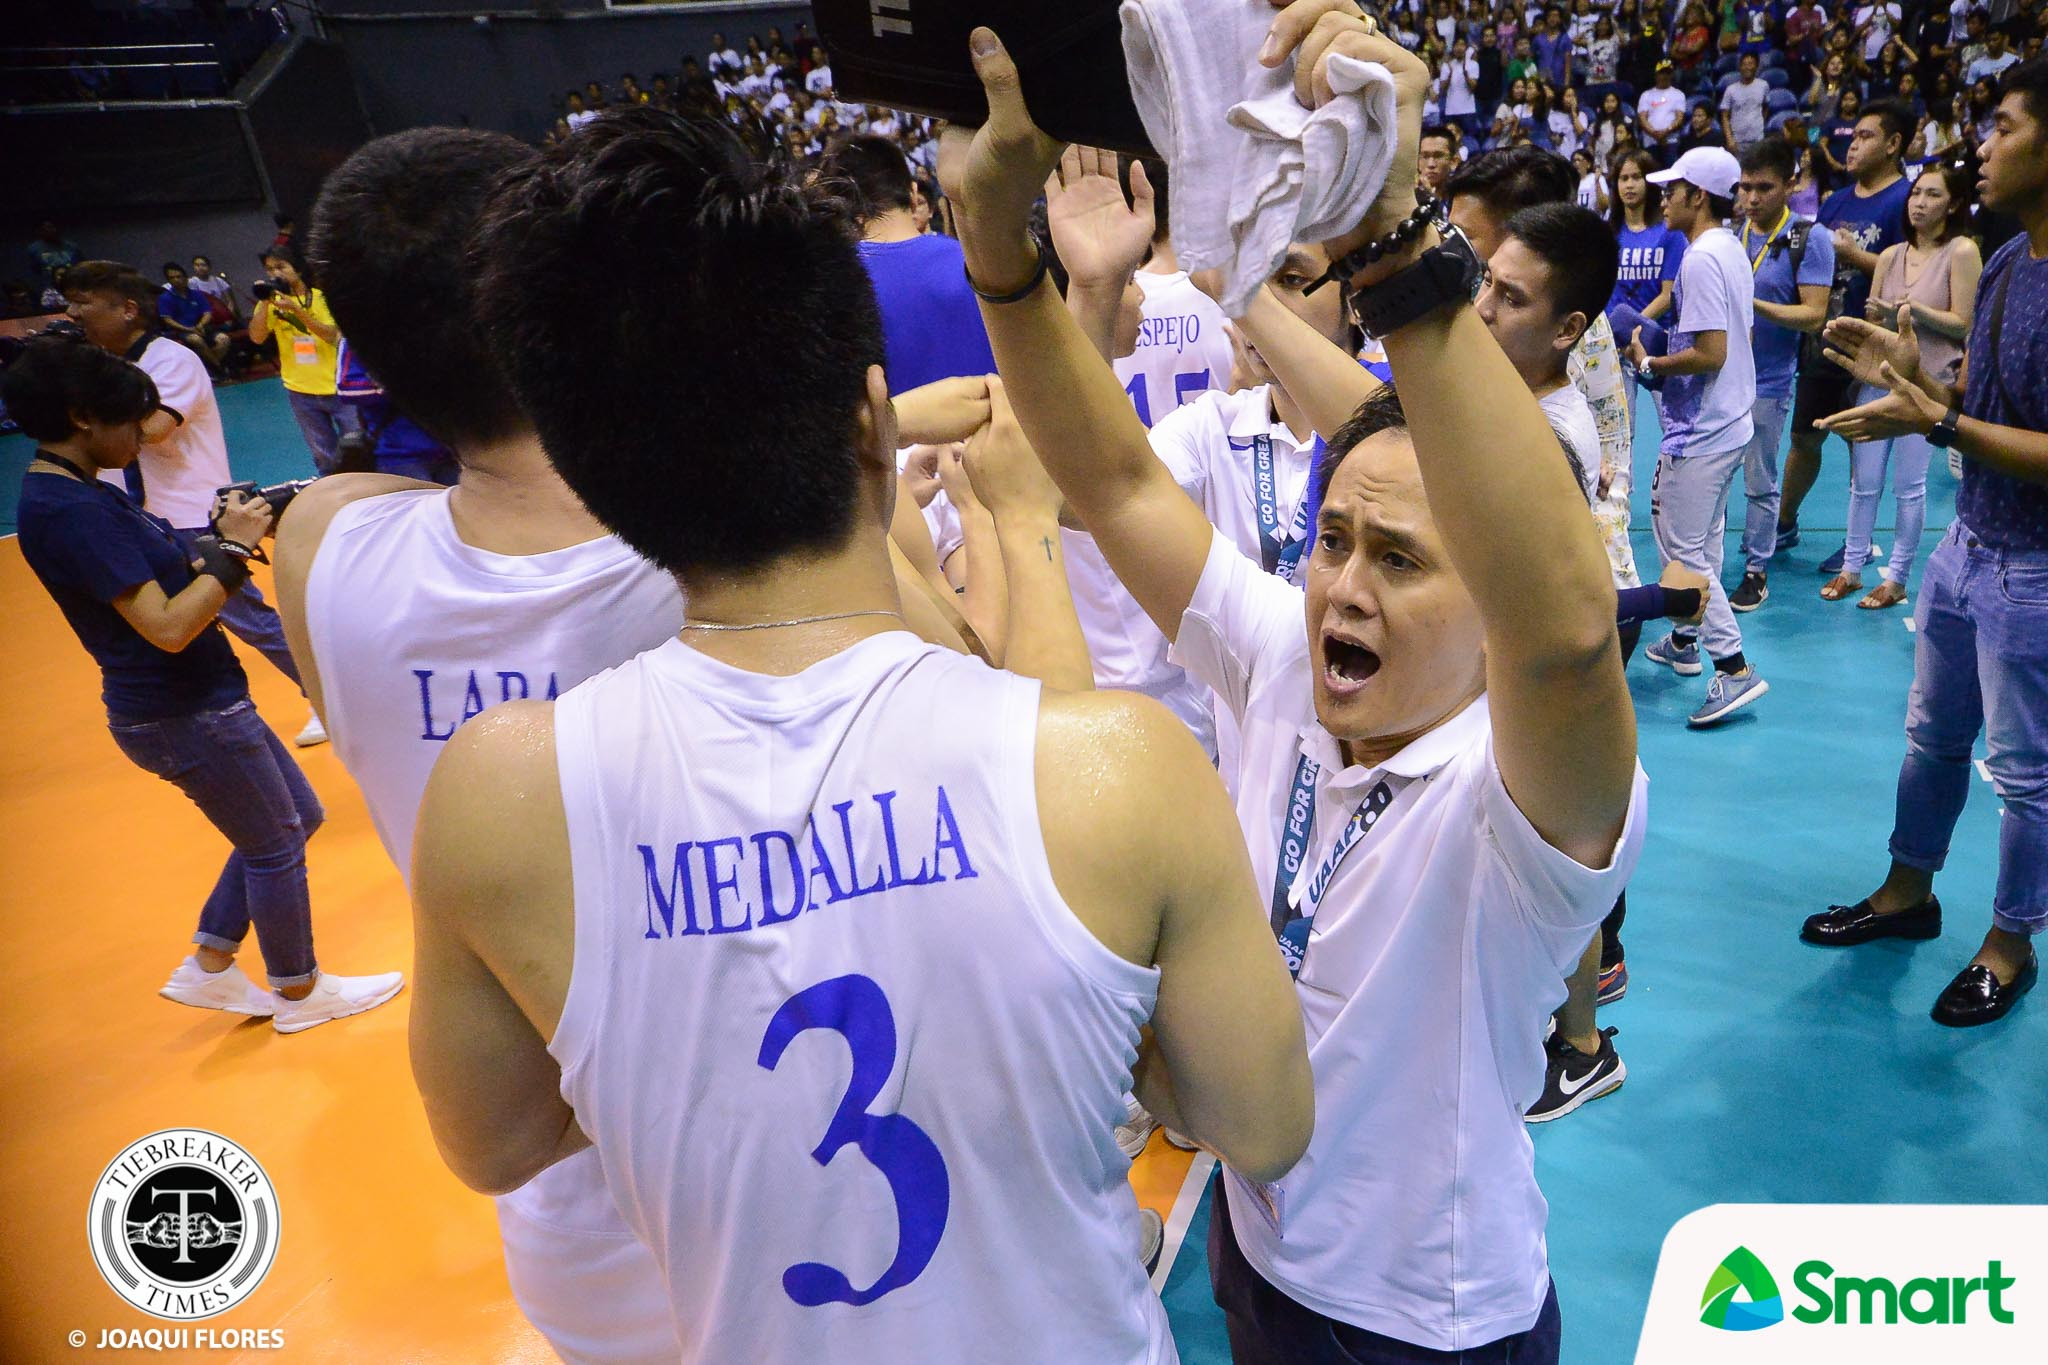 Tiebreaker Times SOURCES: Oliver Almadro to take over as Lady Eagles head coach ADMU News UAAP Volleyball  UAAP Season 81 Women's Volleyball UAAP Season 81 Men's Volleyball UAAP Season 81 Timmy Sto. Tomas Oliver Almadro Ateneo Women's Volleyball Ateneo Men's Volleyball